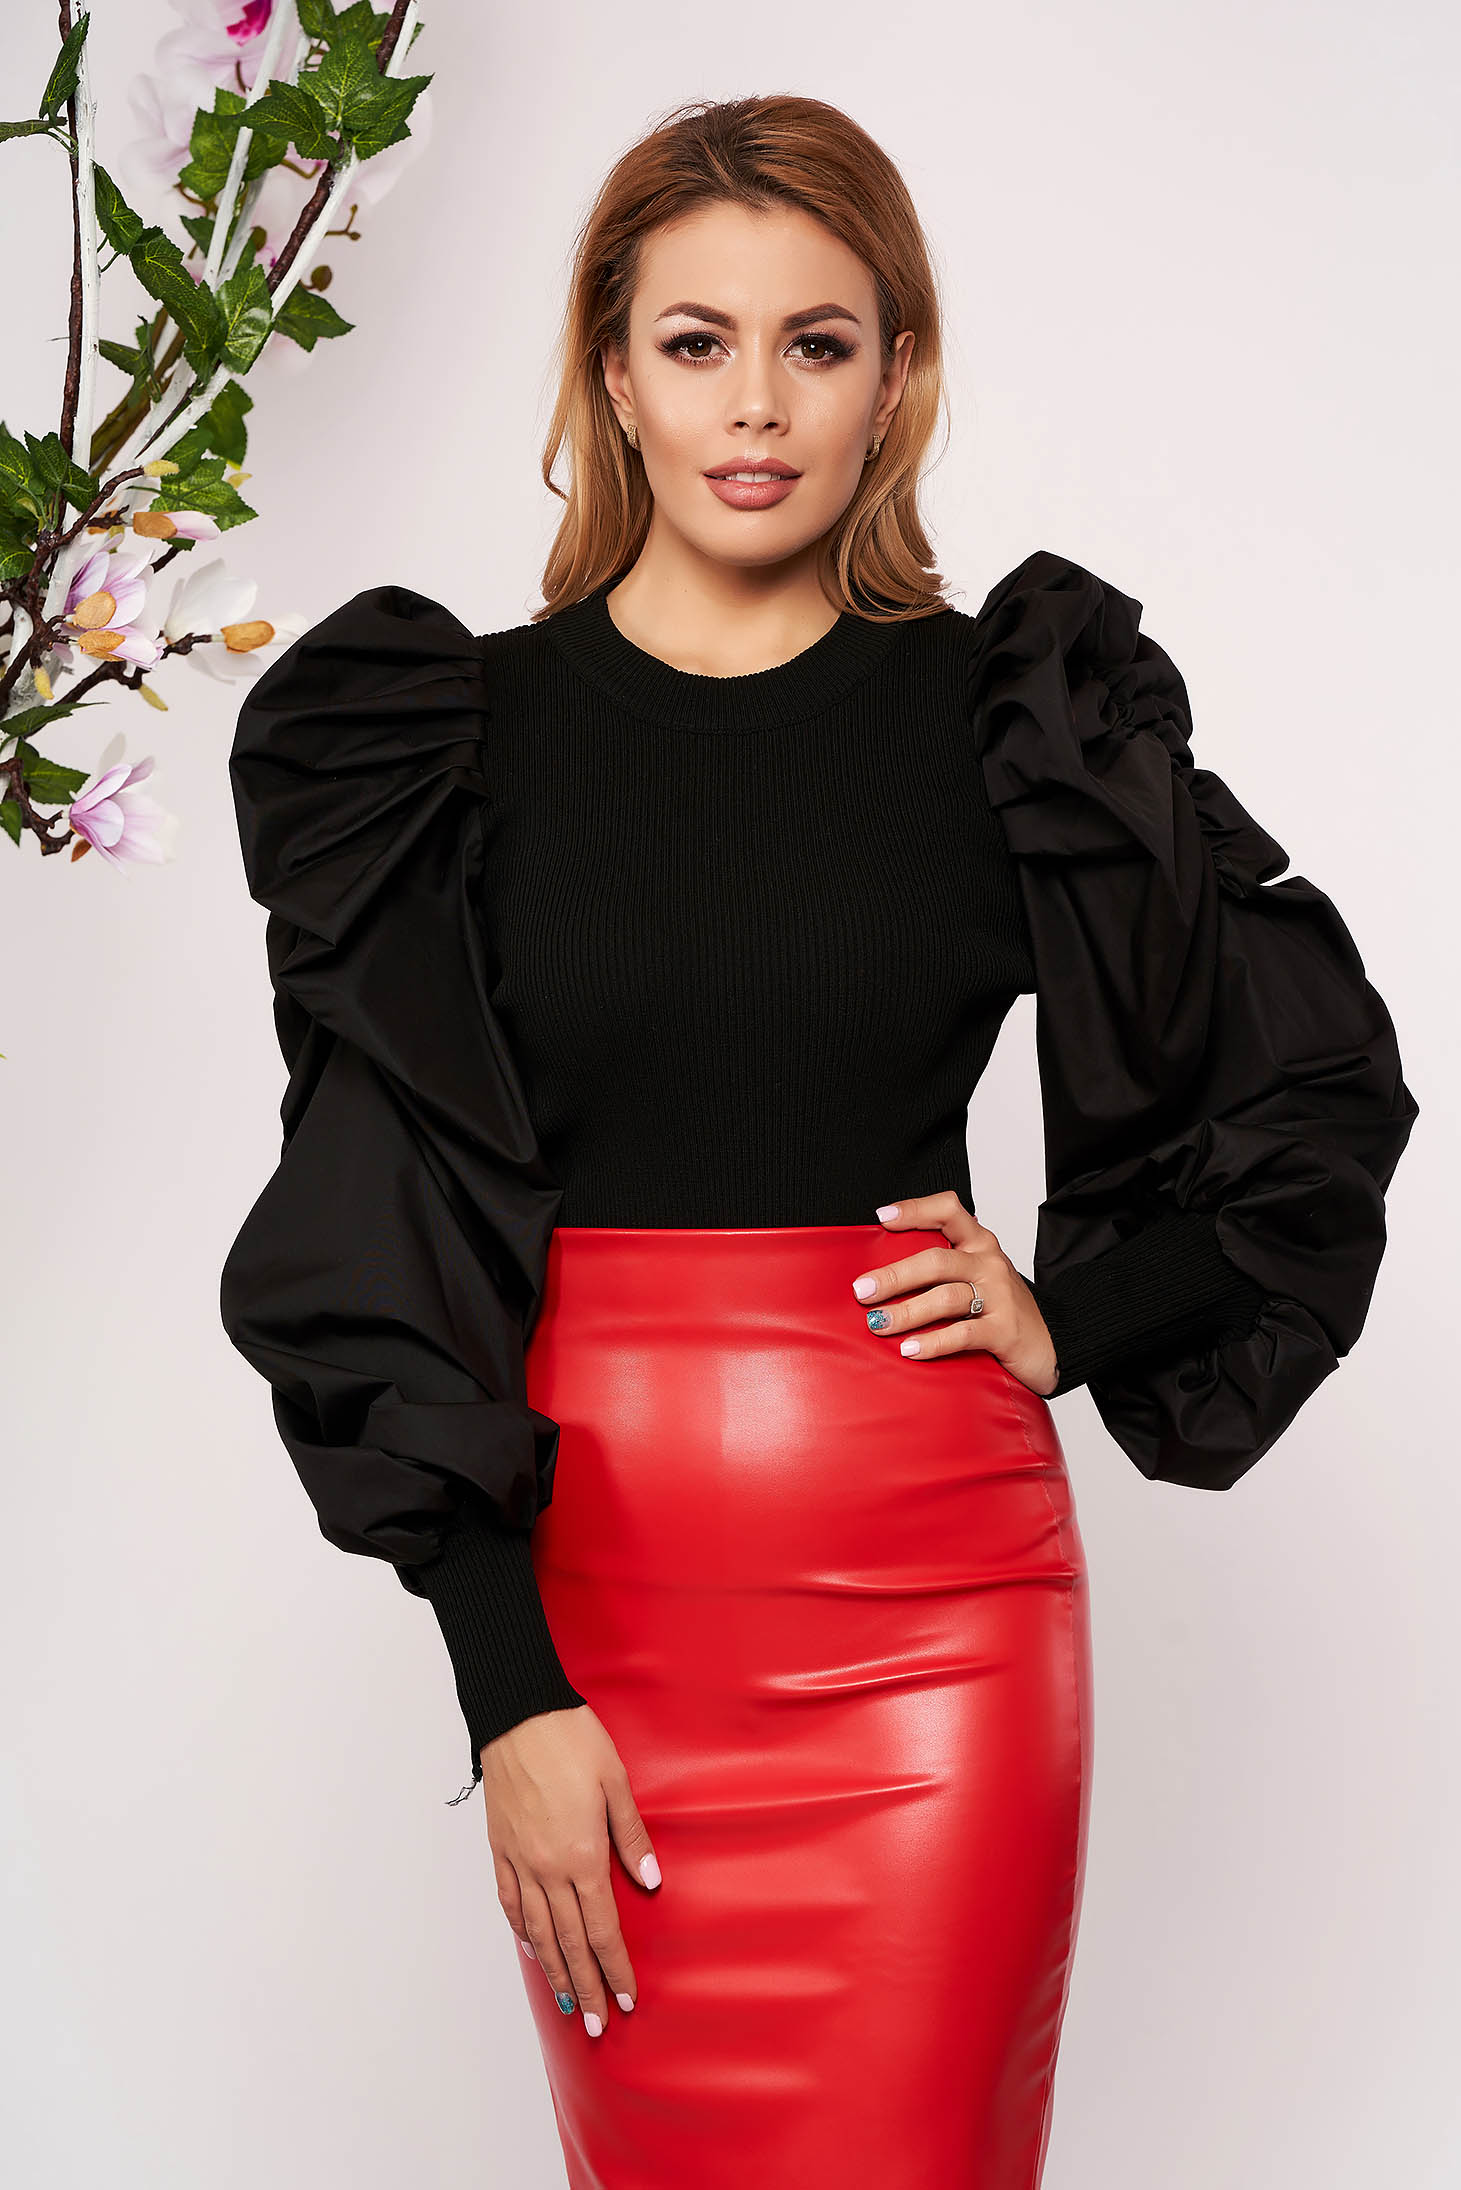 Black women`s blouse elegant arched cut with puffed sleeves long sleeved knitted short cut